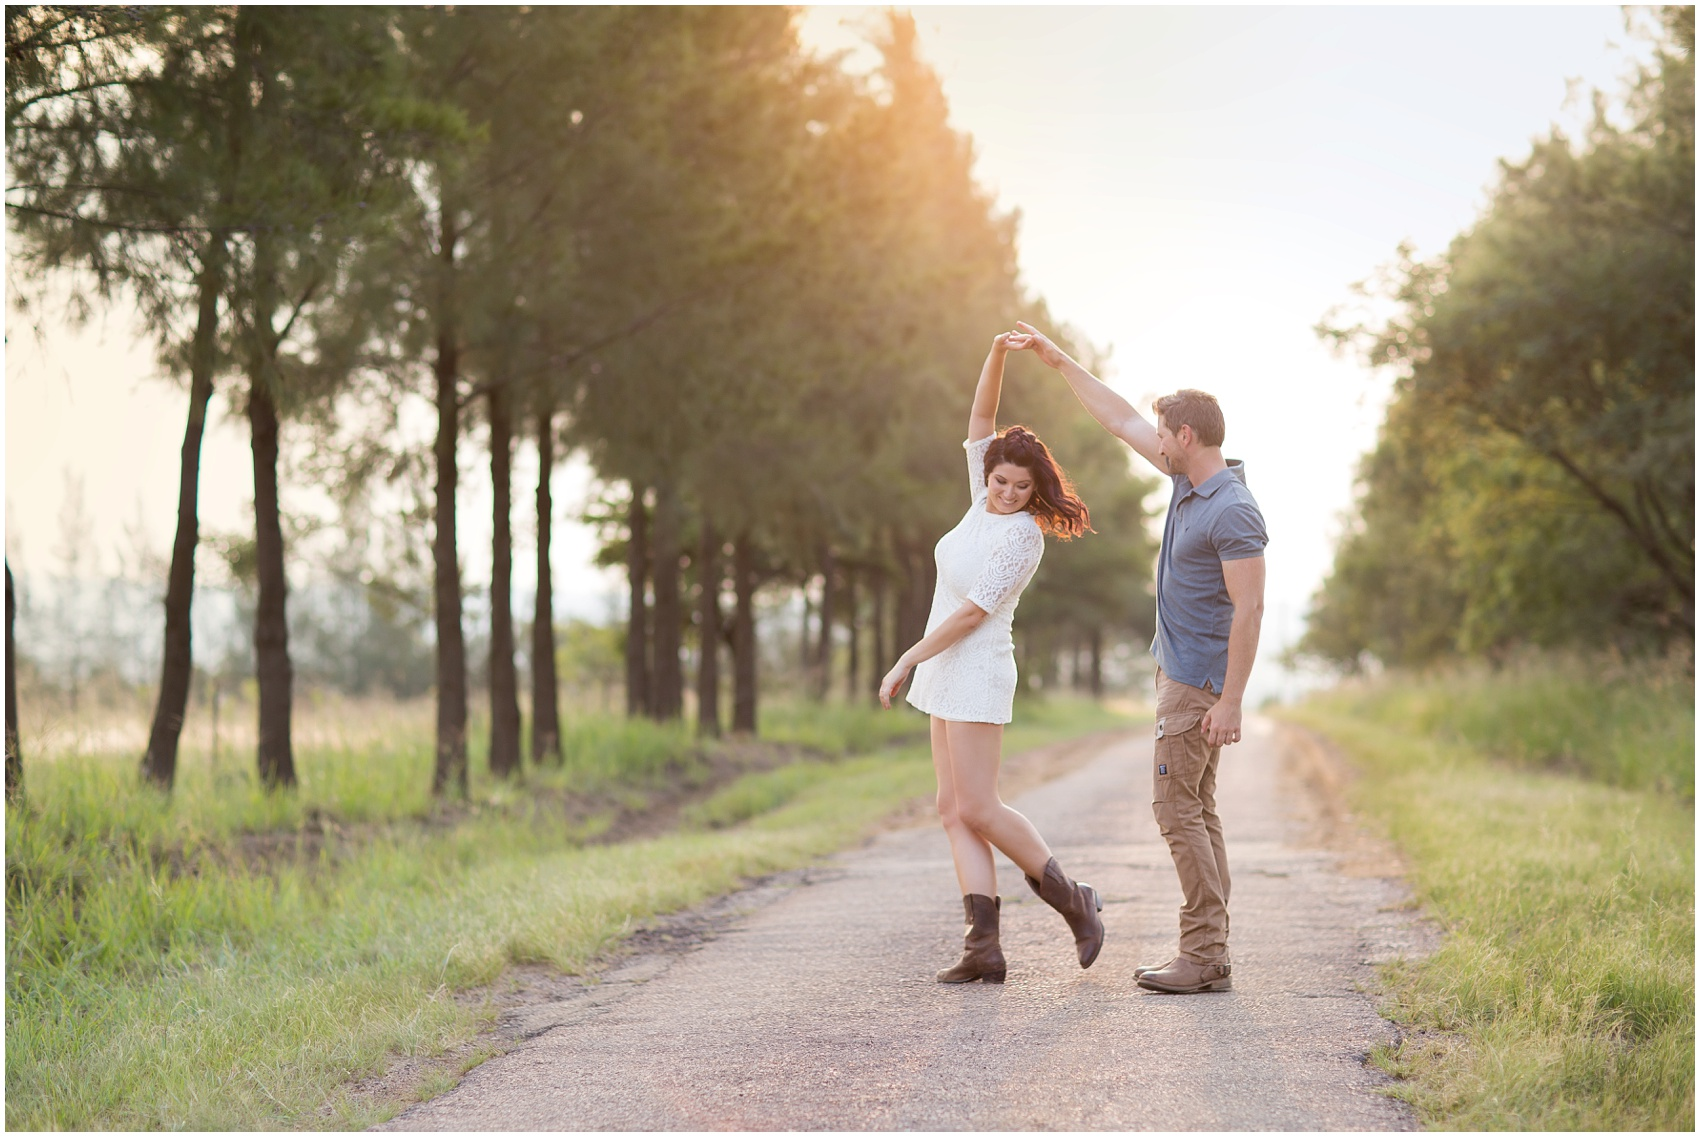 rosemary_hill_engagement_shoot_stephanie_and_jannie_11